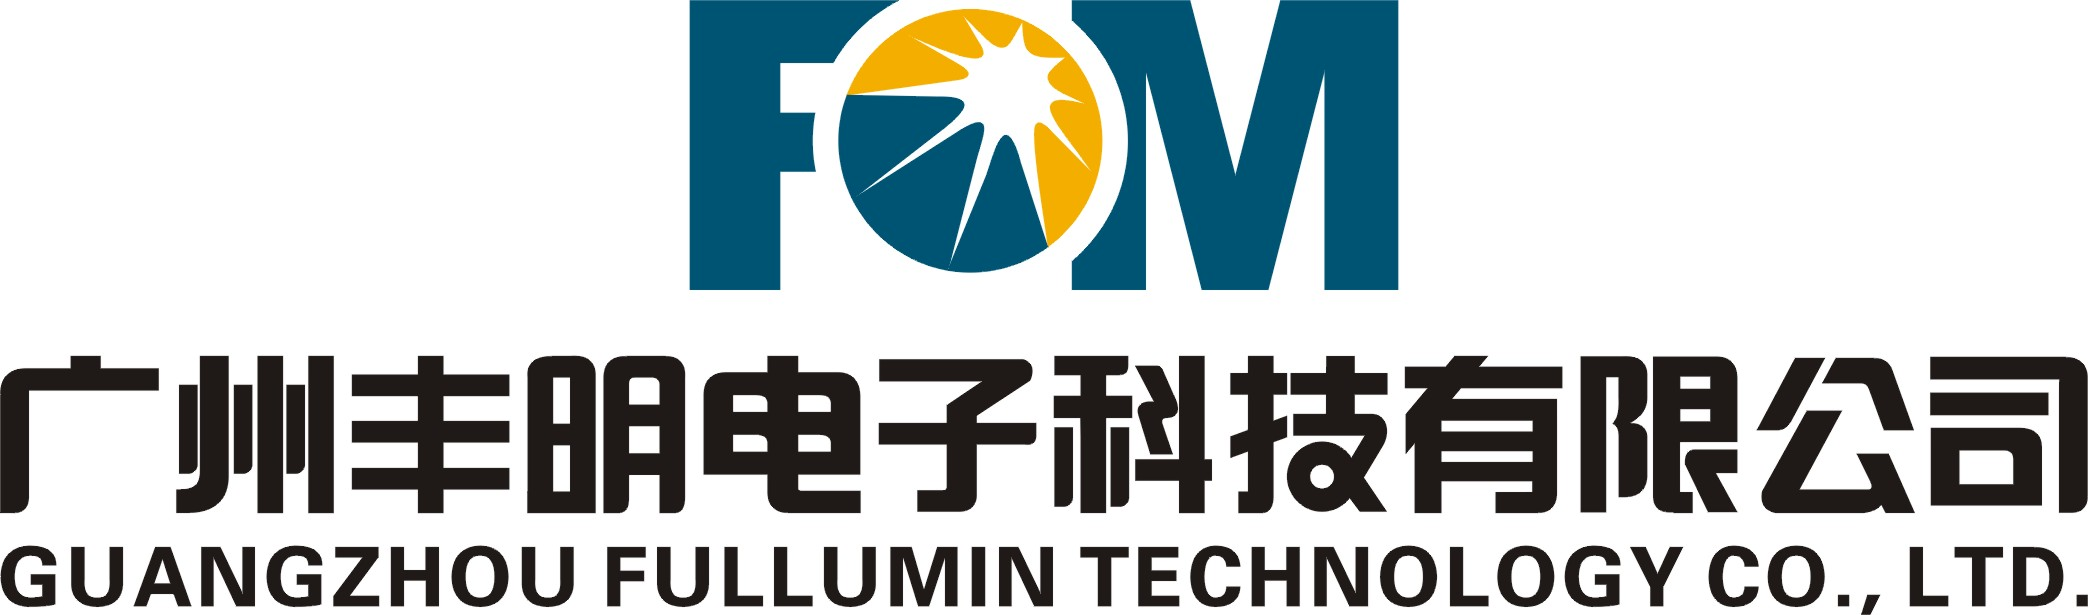 Gaungzhou Fullumin Technology Co., Ltd.